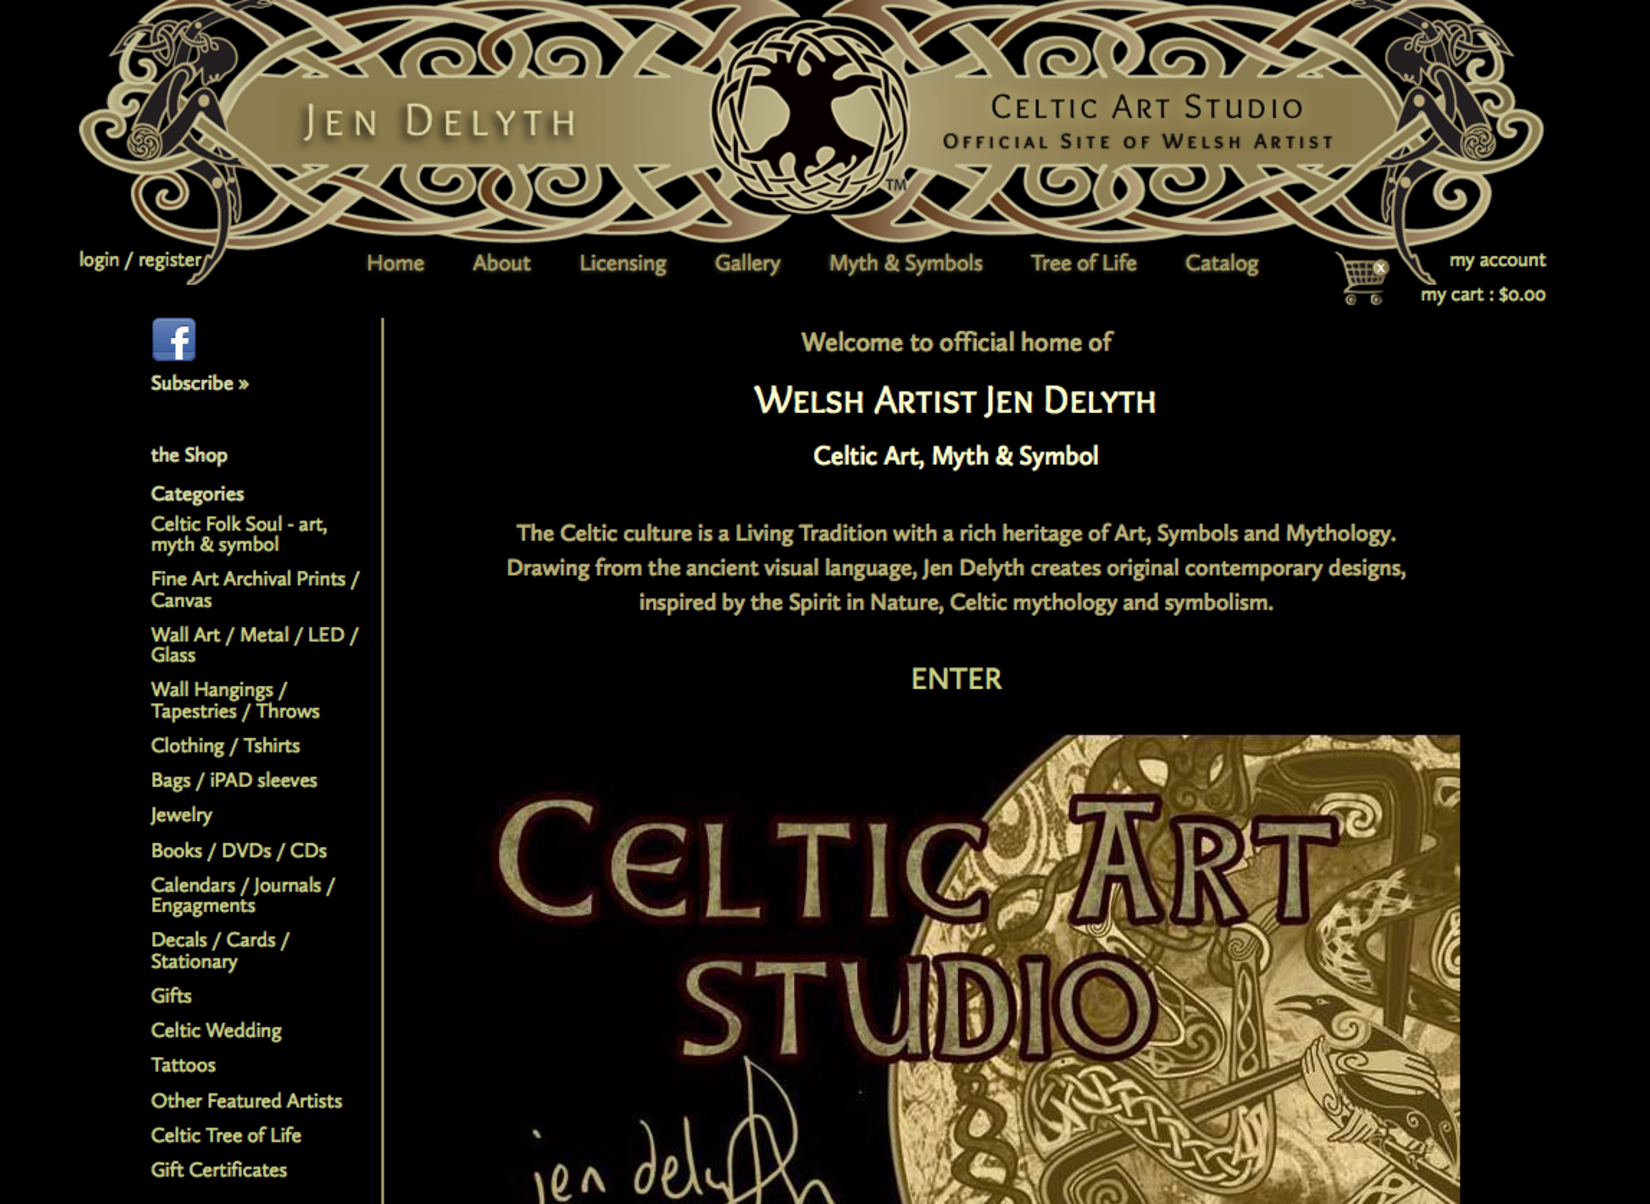 celtic art studio